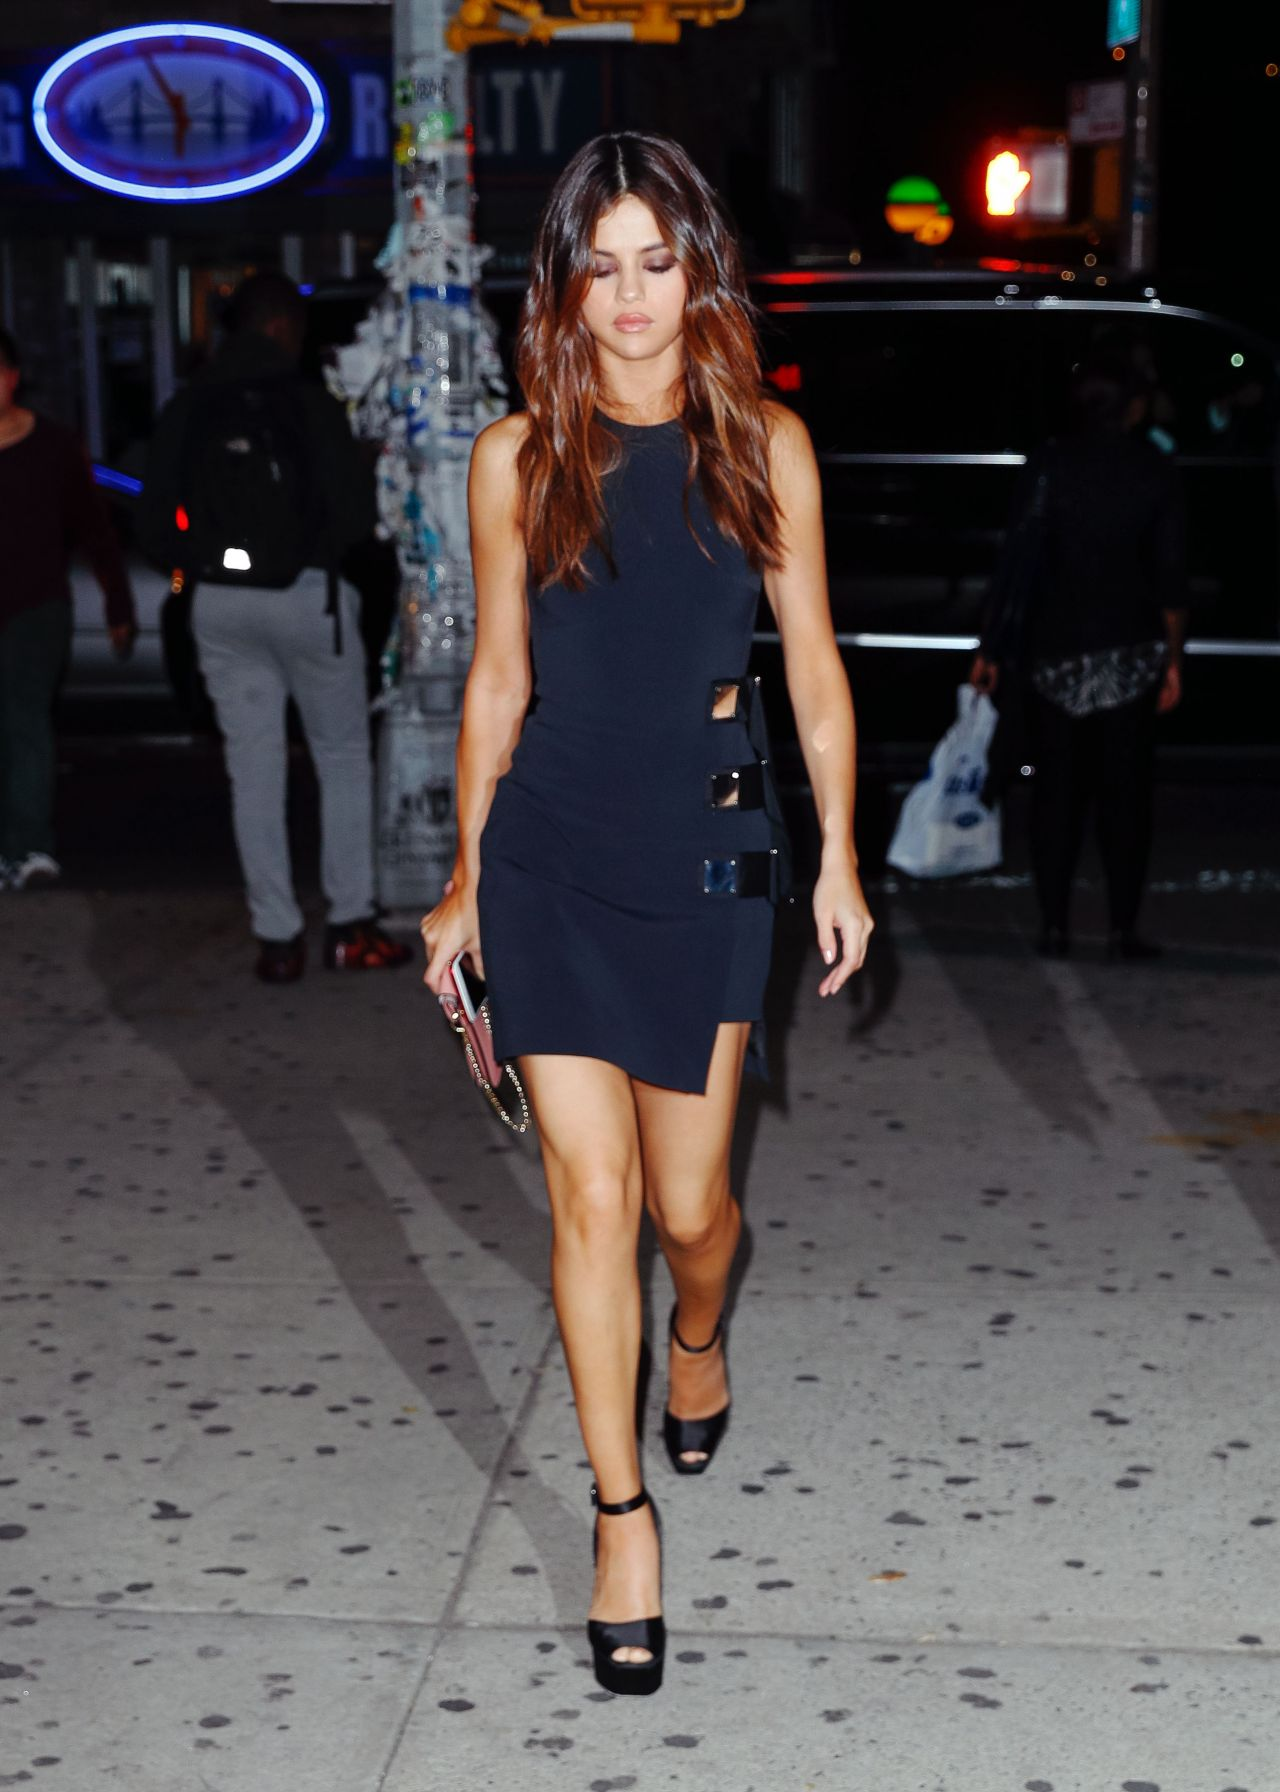 selena gomez accidental Some of my favorite pictures of her are this one, ...